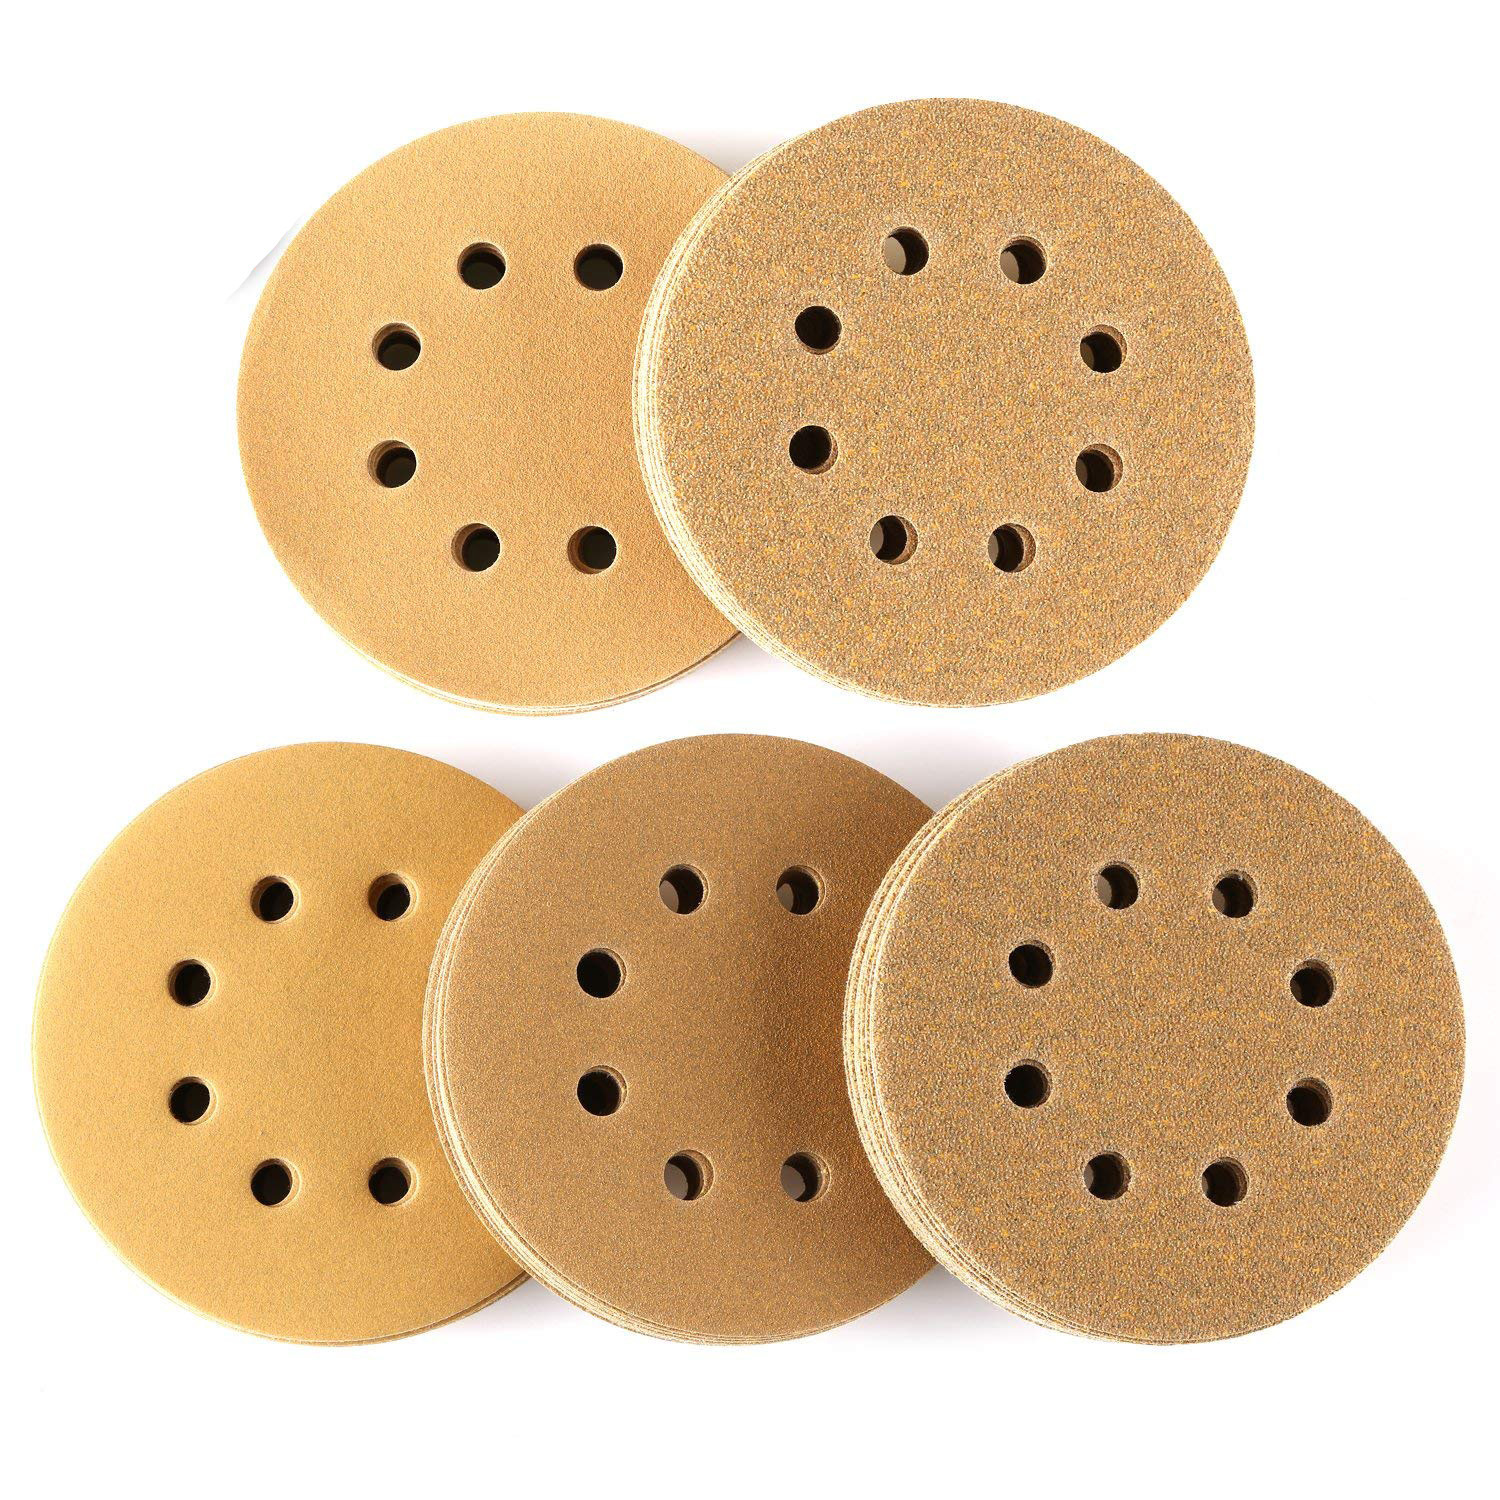 Wholesale 5-Inch 8-Hole Bei Rong Vacuuming Dry Grinding Disc Sandpaper Polishing Yellow Woven Nap Sandpaper Manufacturers Direct